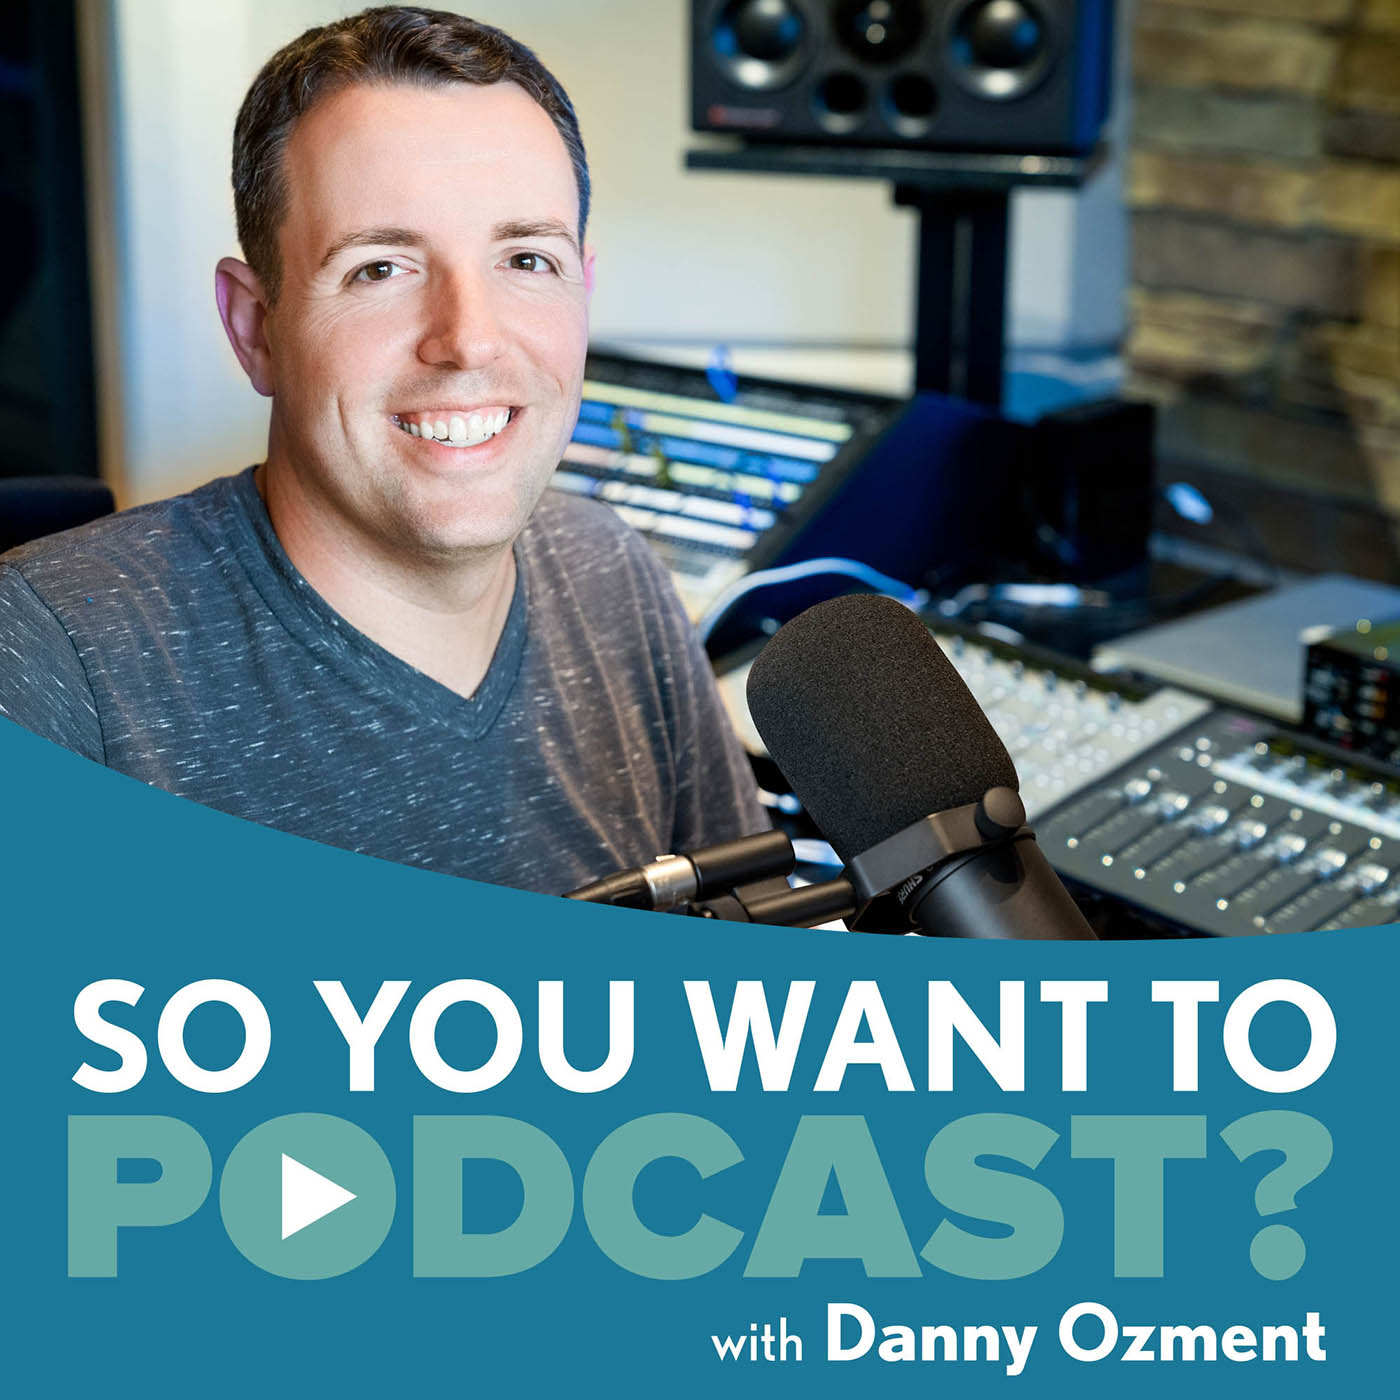 Podcast Strategies for Growing Your Business, Community, and Influence While Profiting show art